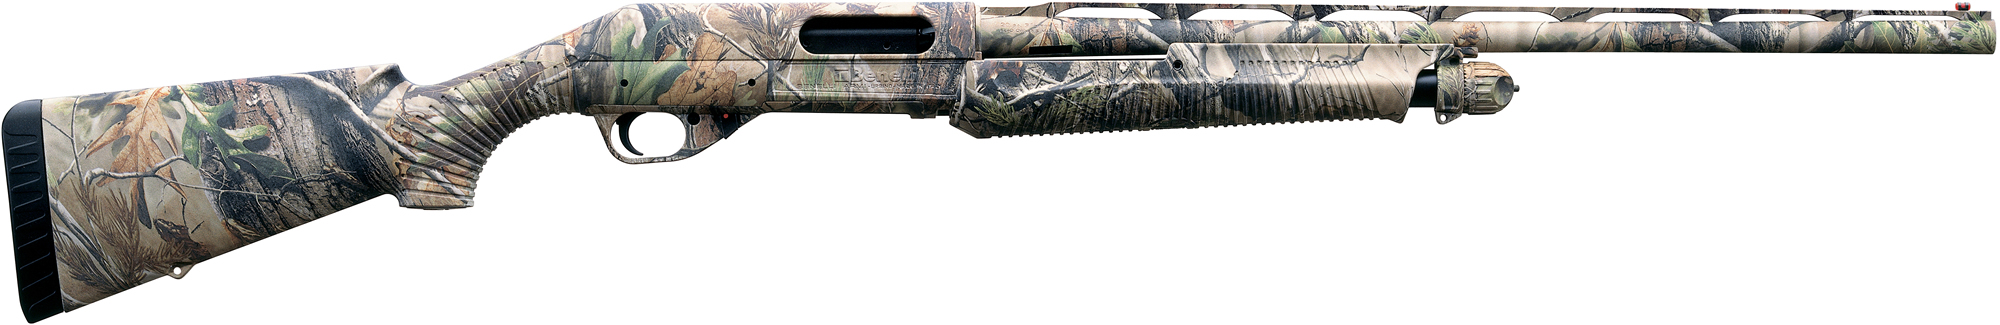 "Benelli Nova Pump Shotgun BN20047, 20 Gauge, 24"", 3"" Chmbr, Synthetic Stock, APG HD Finish"